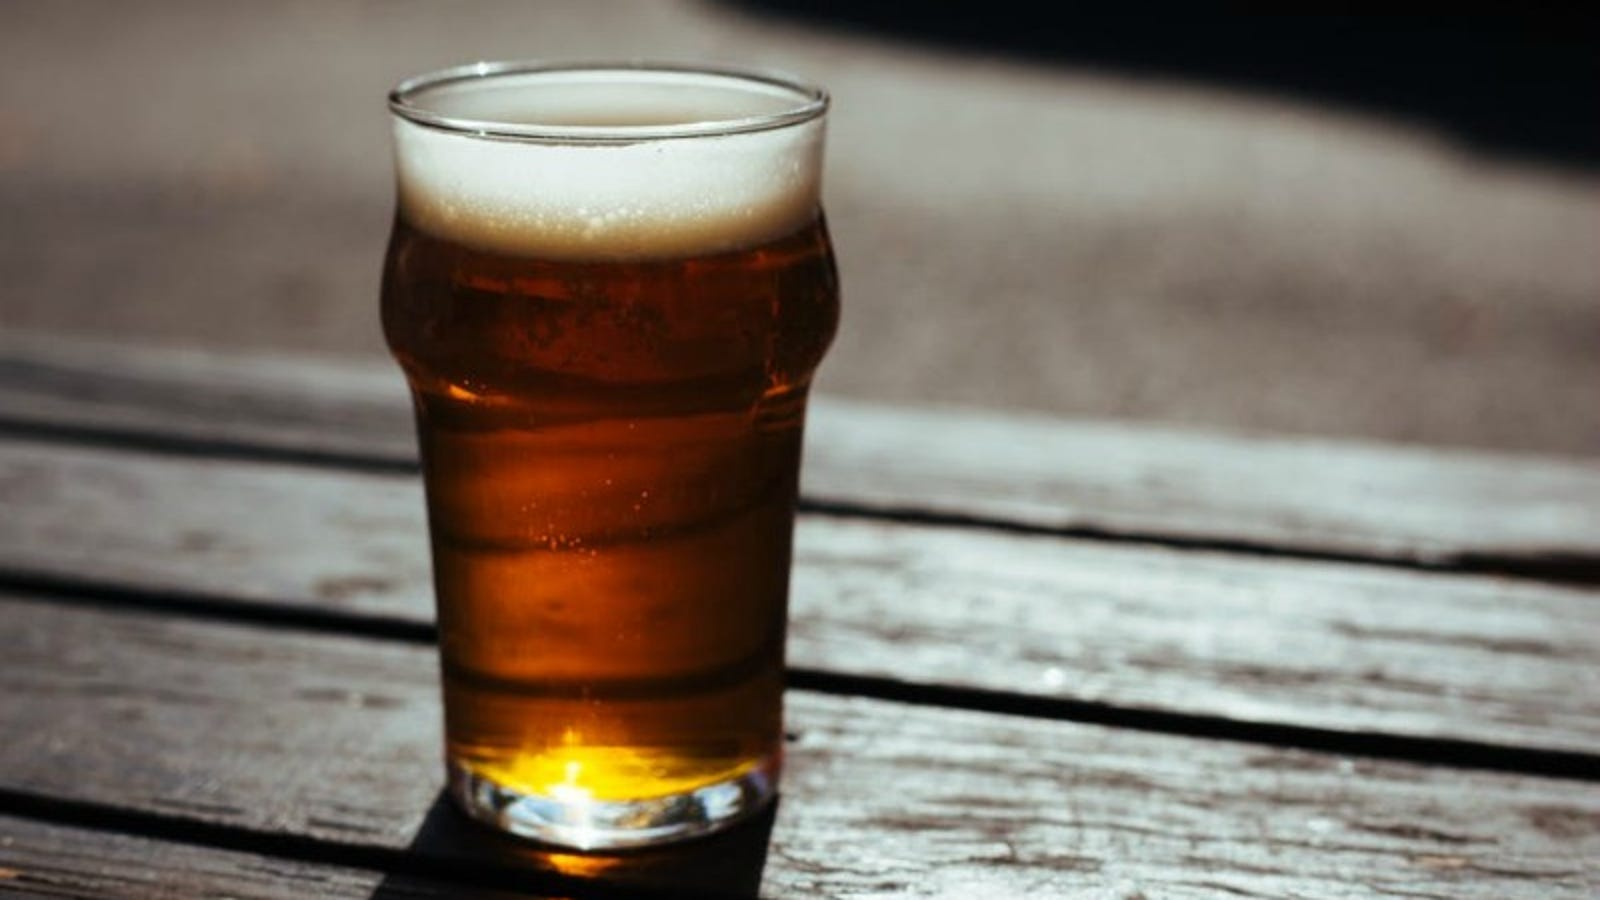 How and with what to drink beer correctly